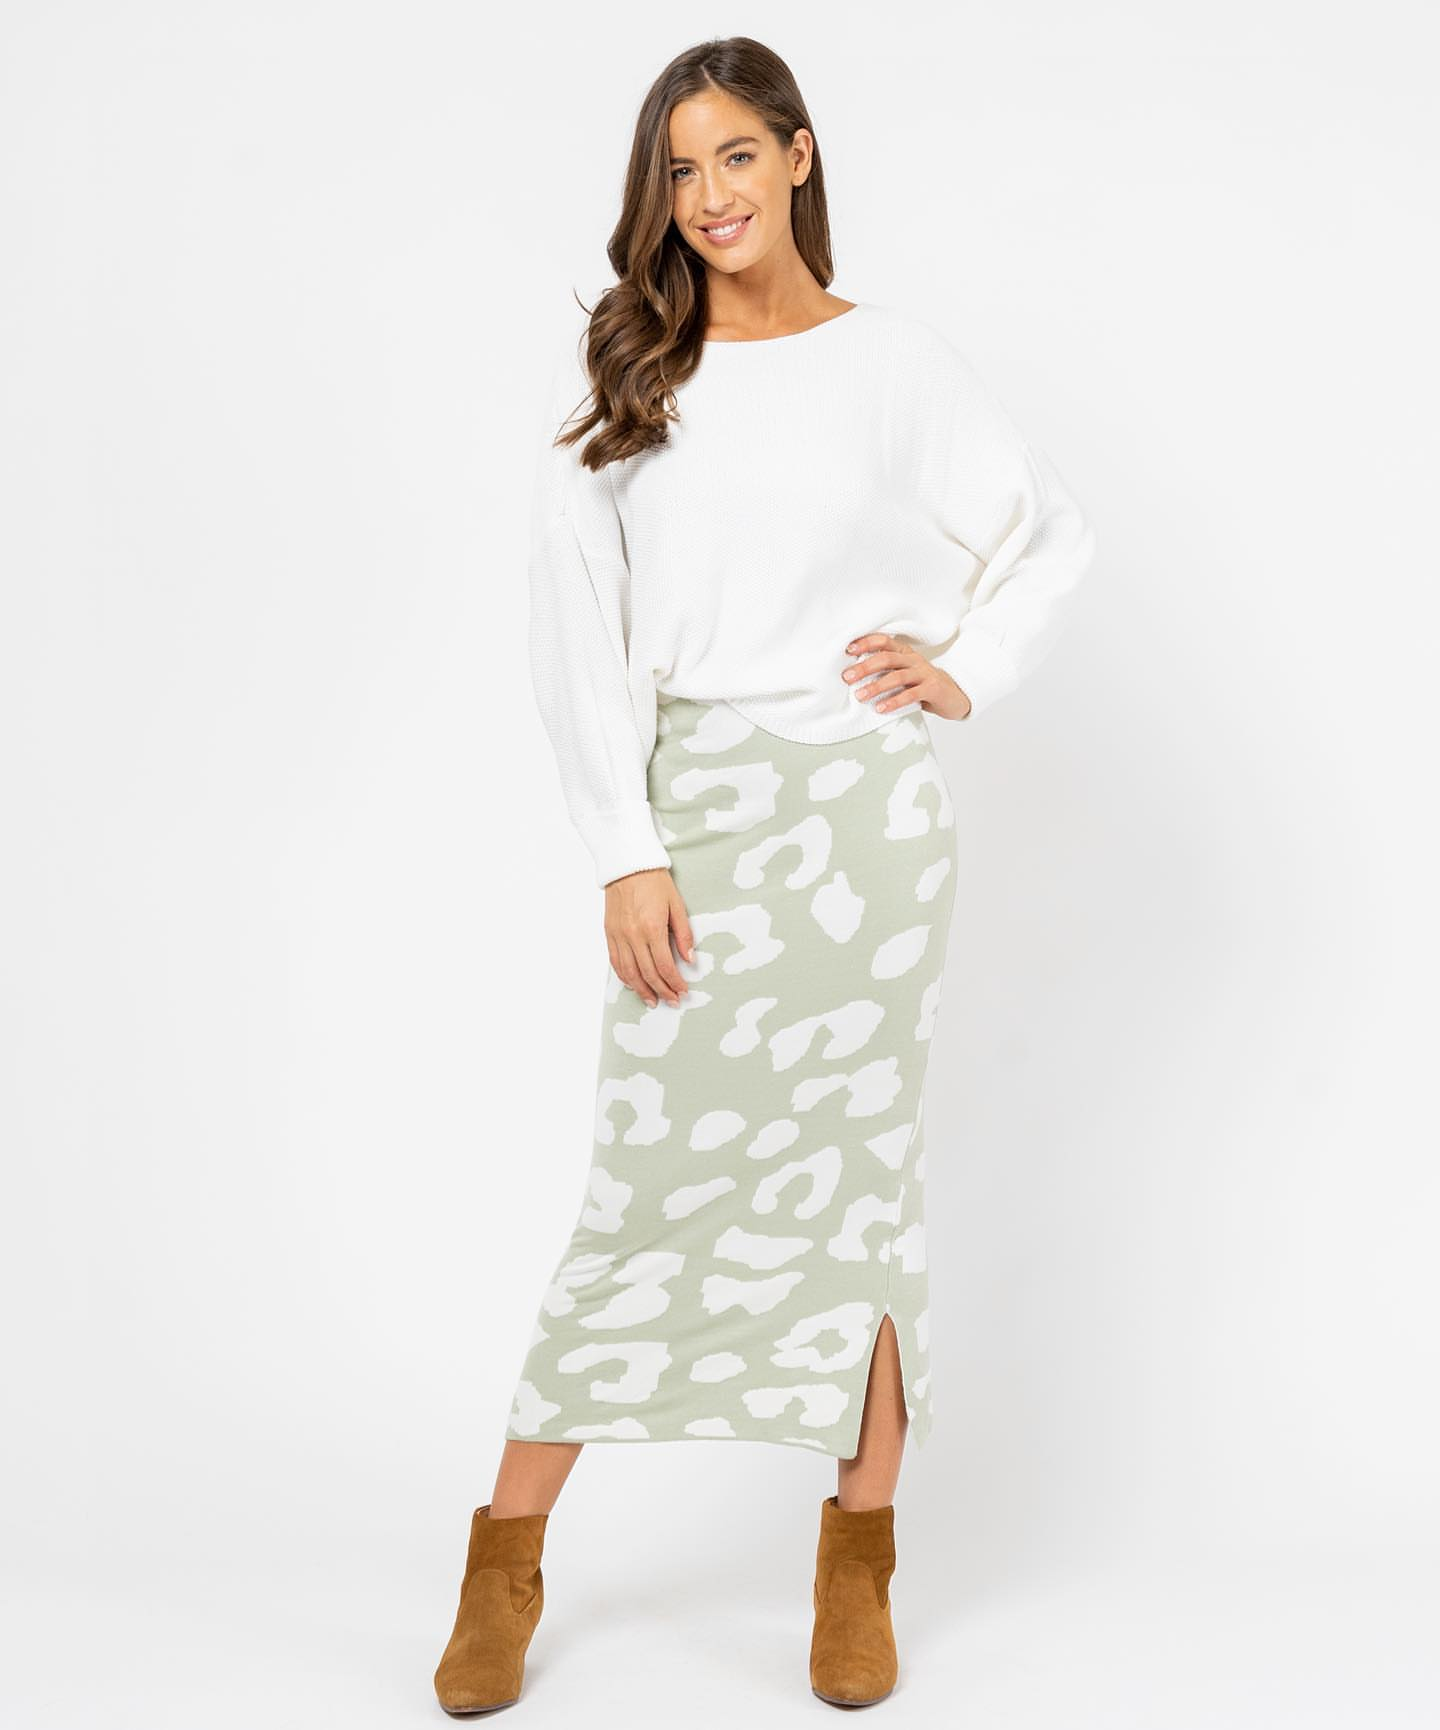 JADA KNIT SKIRT | GREEN LEOPARD - SALE